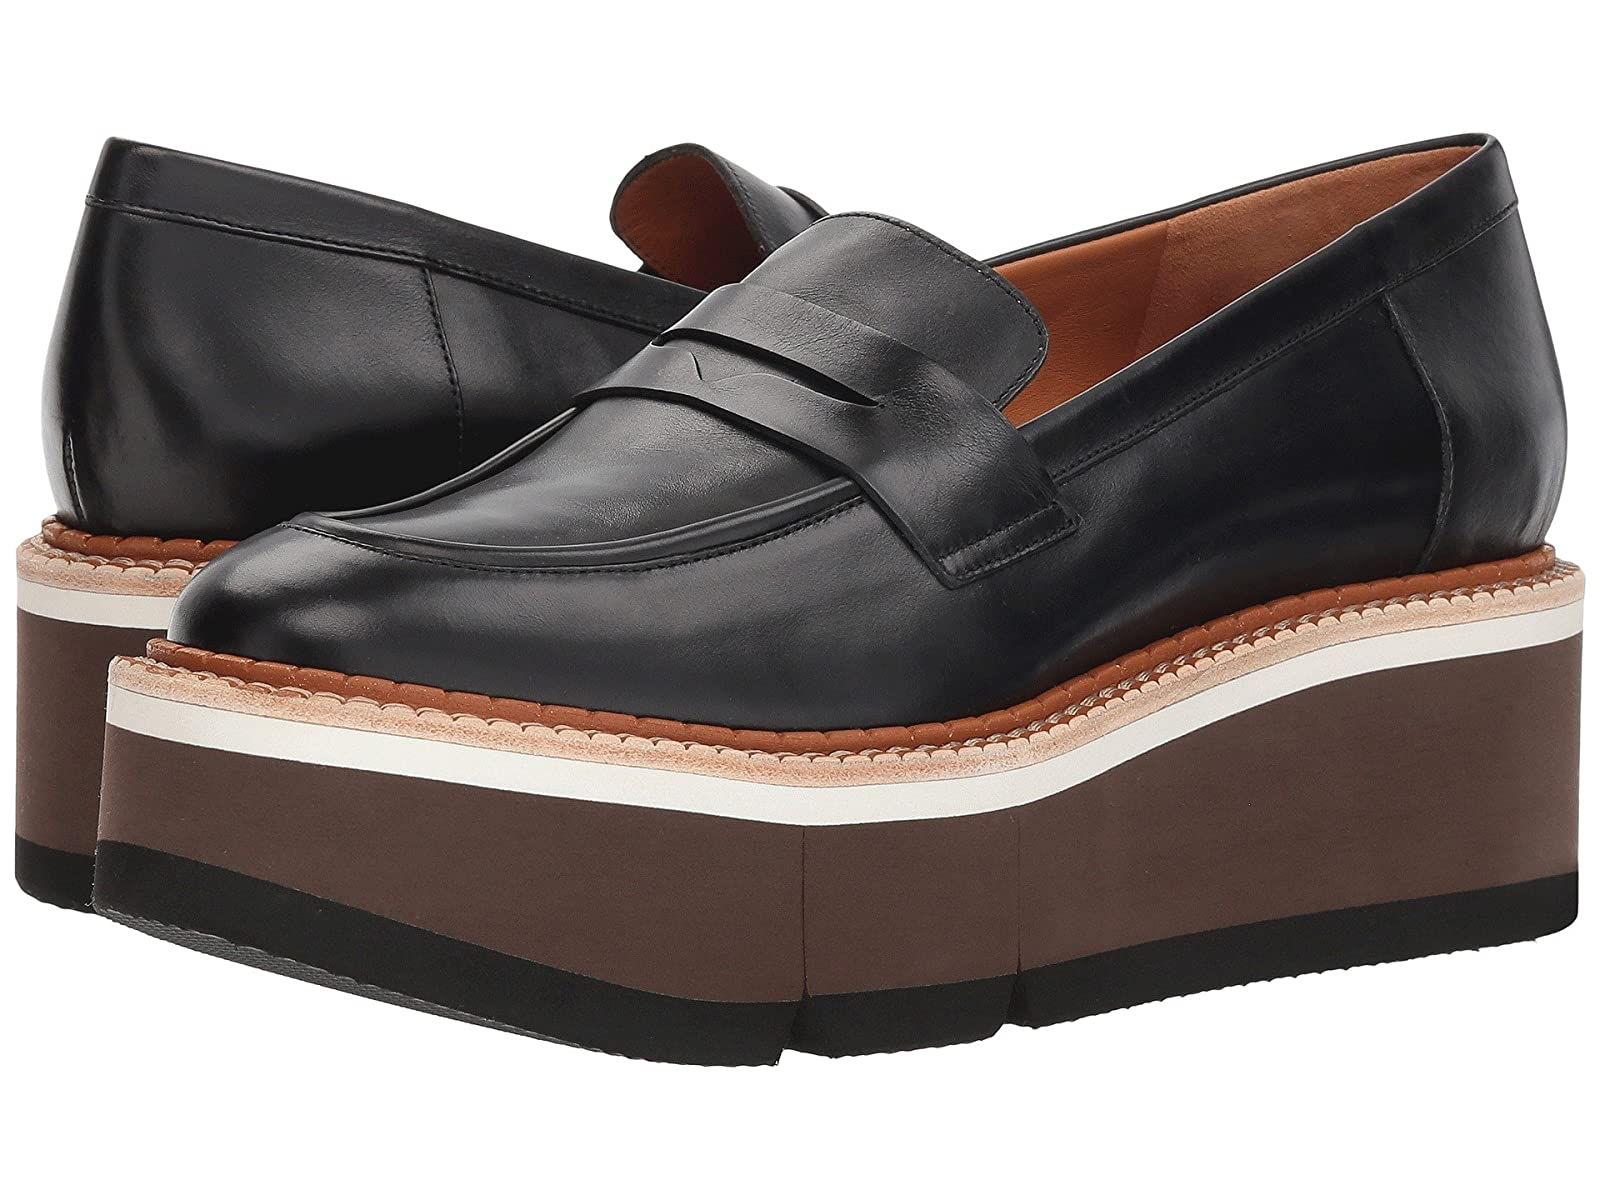 Clergerie BenedictAtmospheric grades have affordable shoes